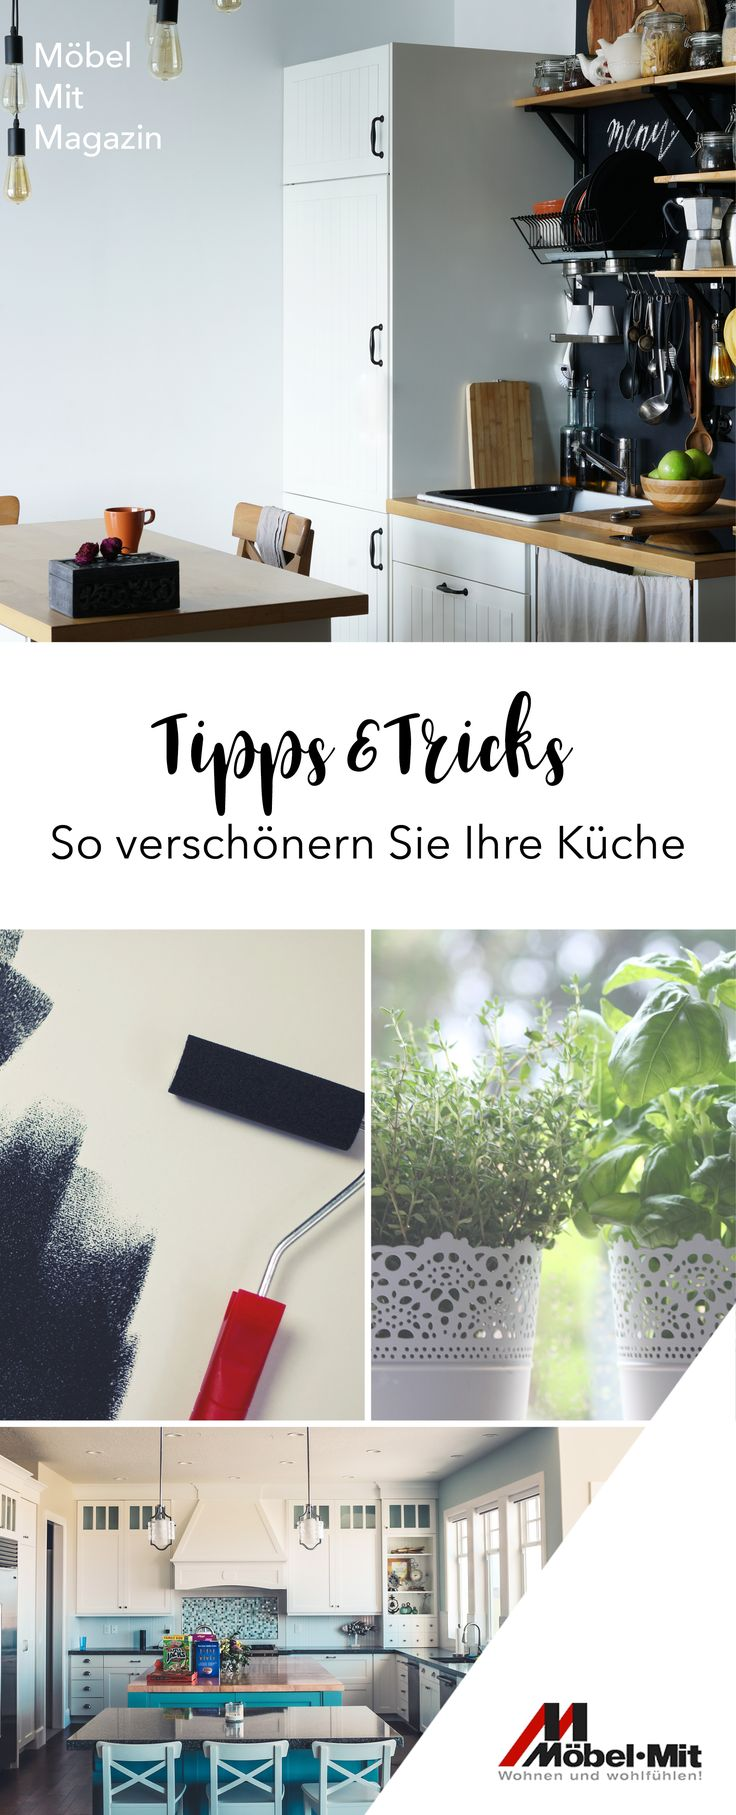 67 best Küchen images on Pinterest | Cooking food, Recycling and ...